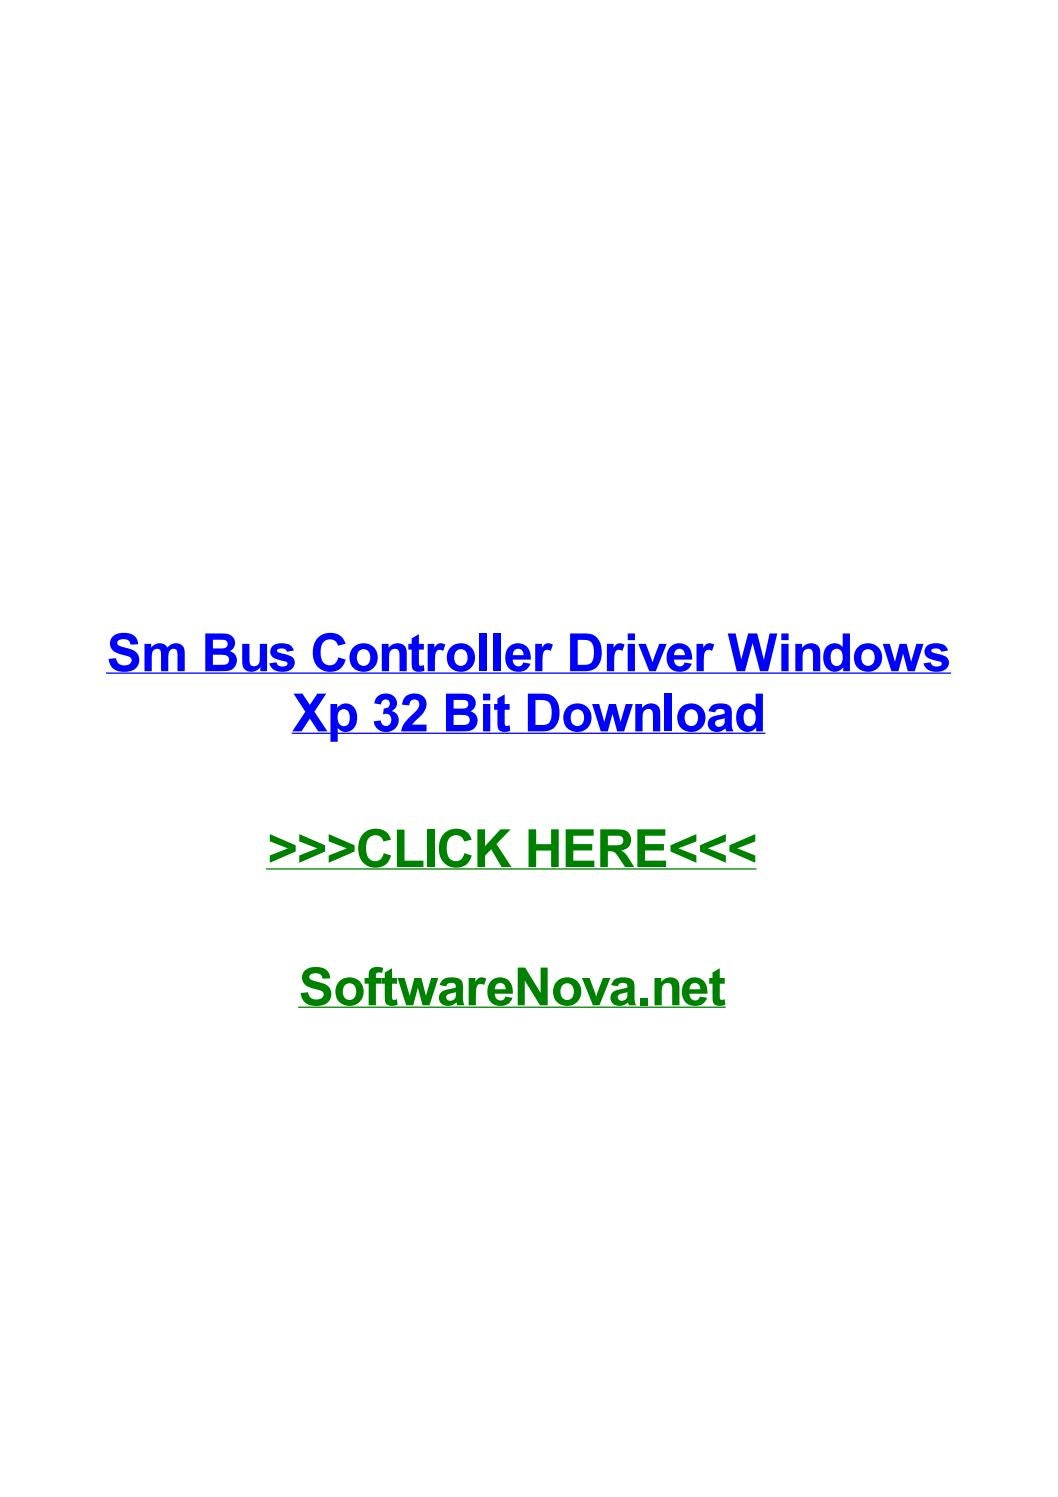 Sms bus controller driver xp download.